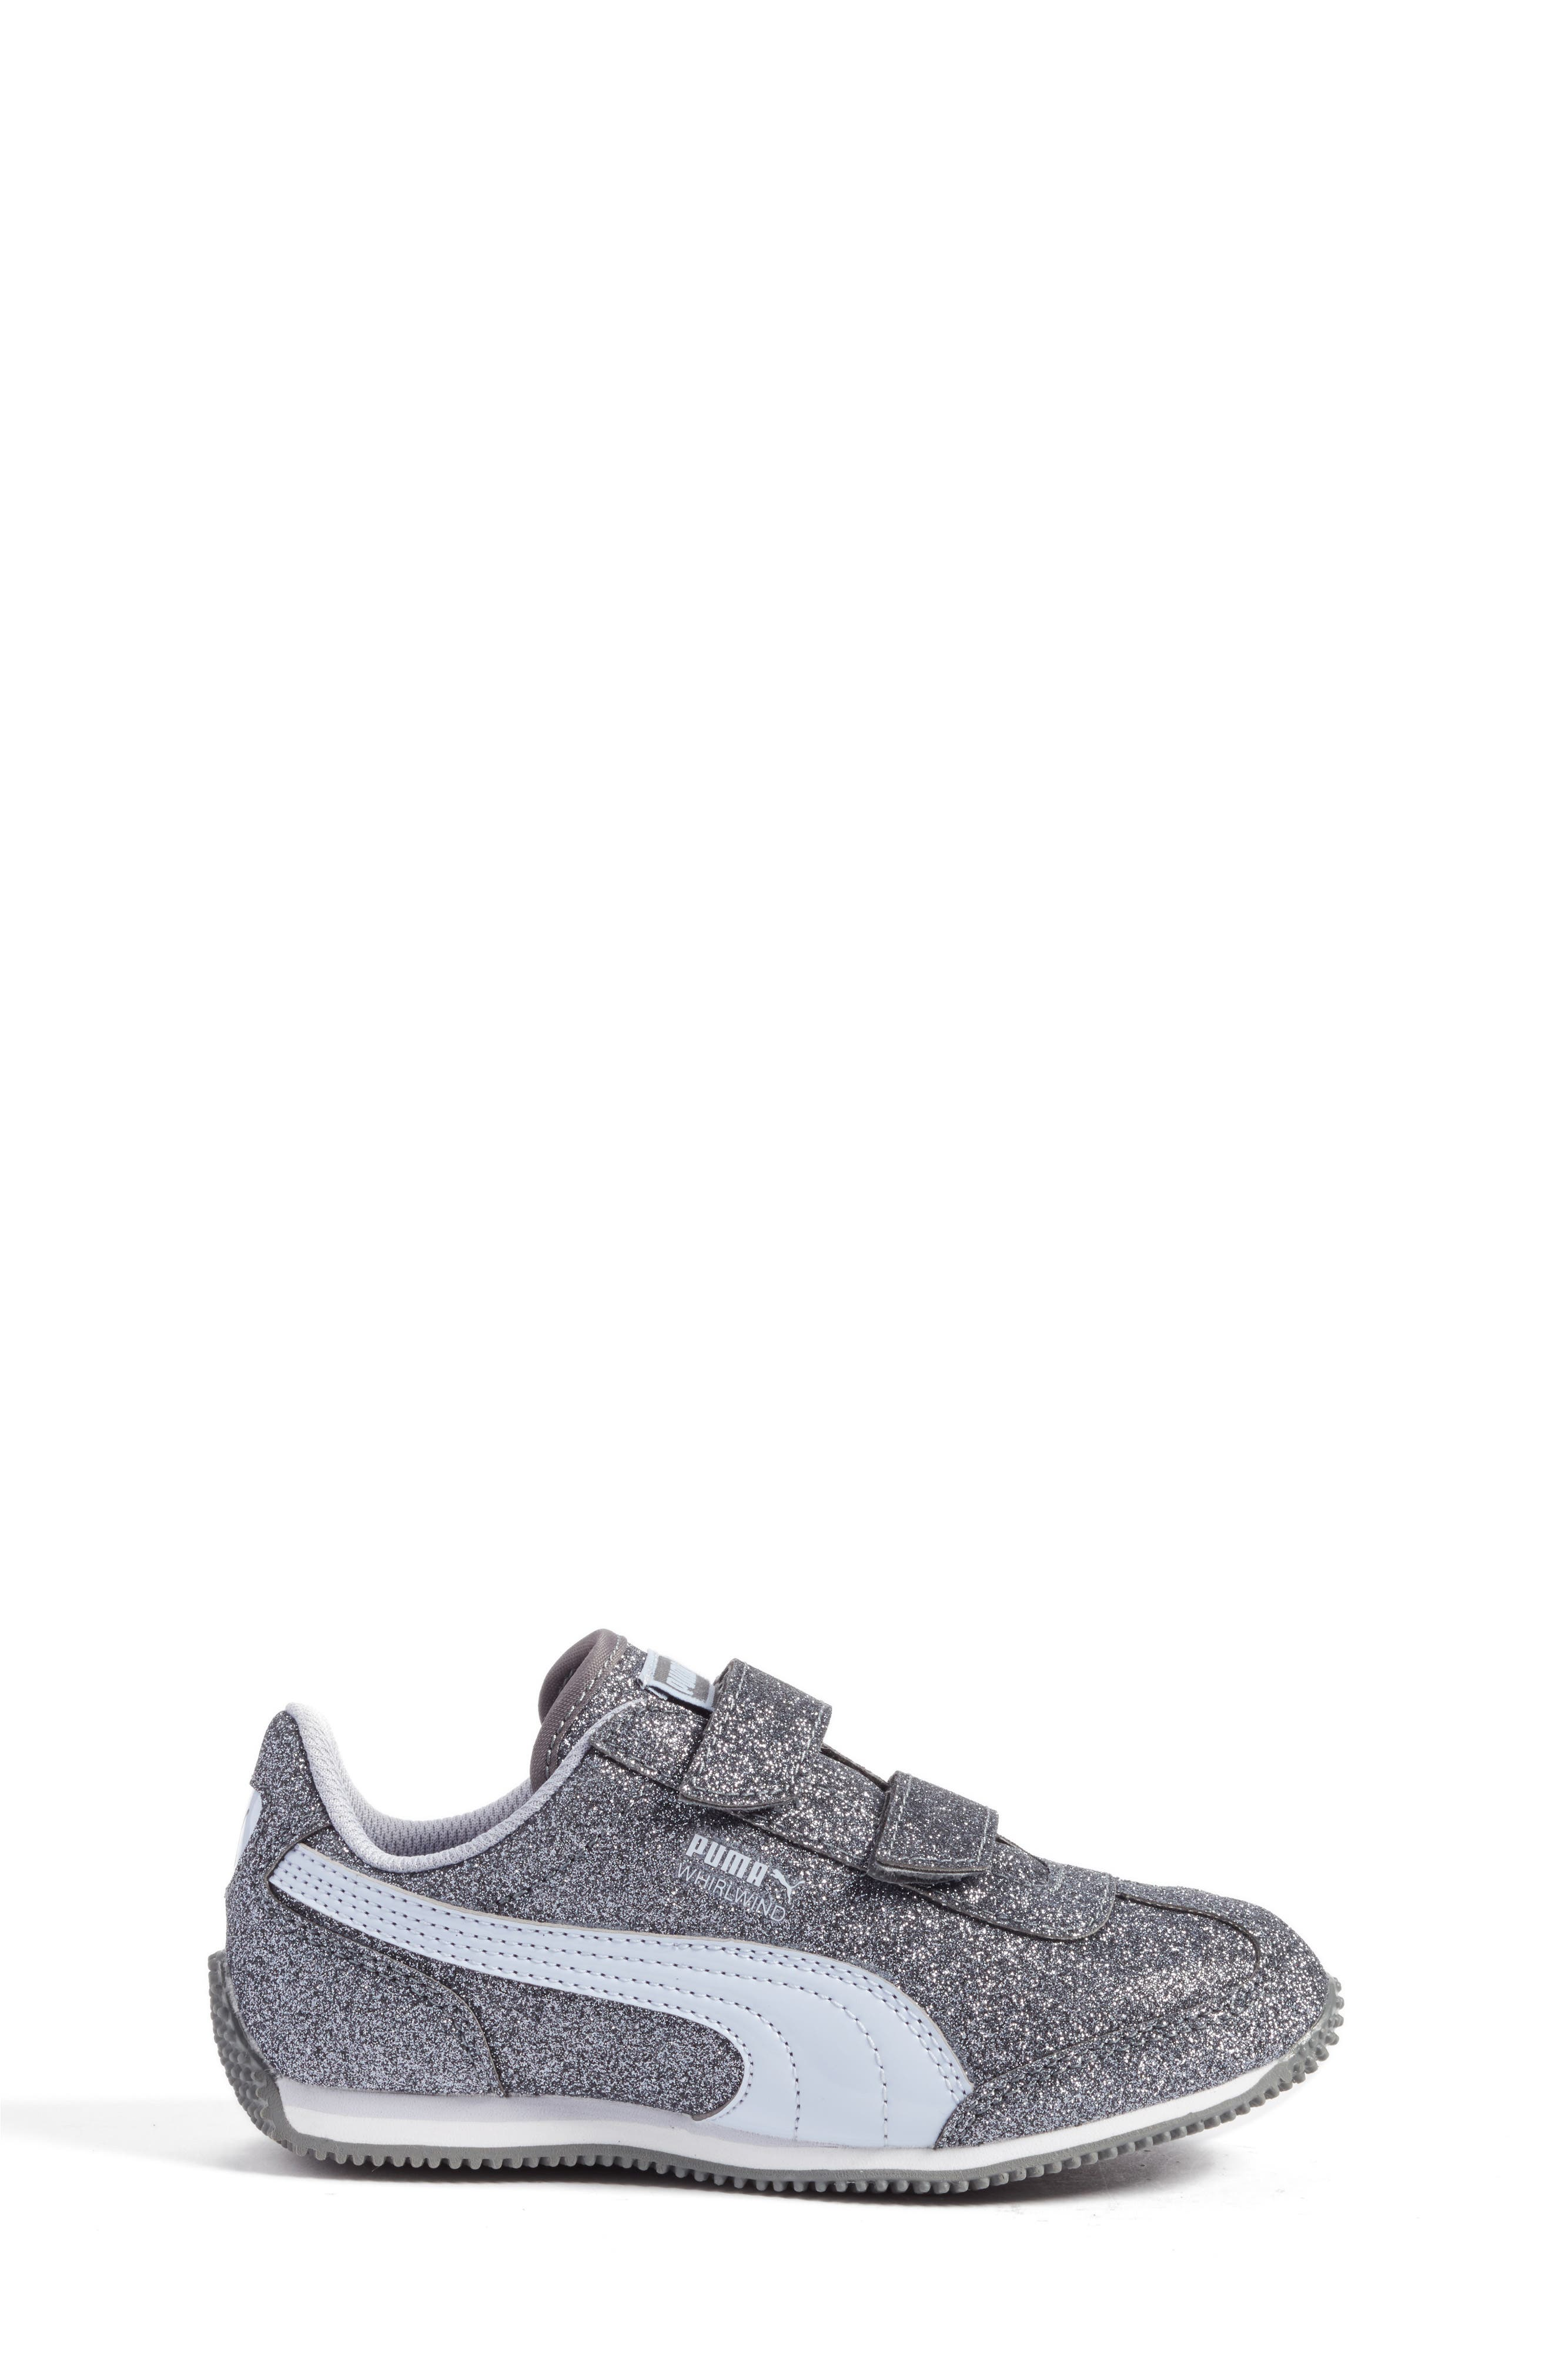 Alternate Image 3  - PUMA Whirlwind Glitz Sneaker (Toddler, Little Kid & Big Kid)